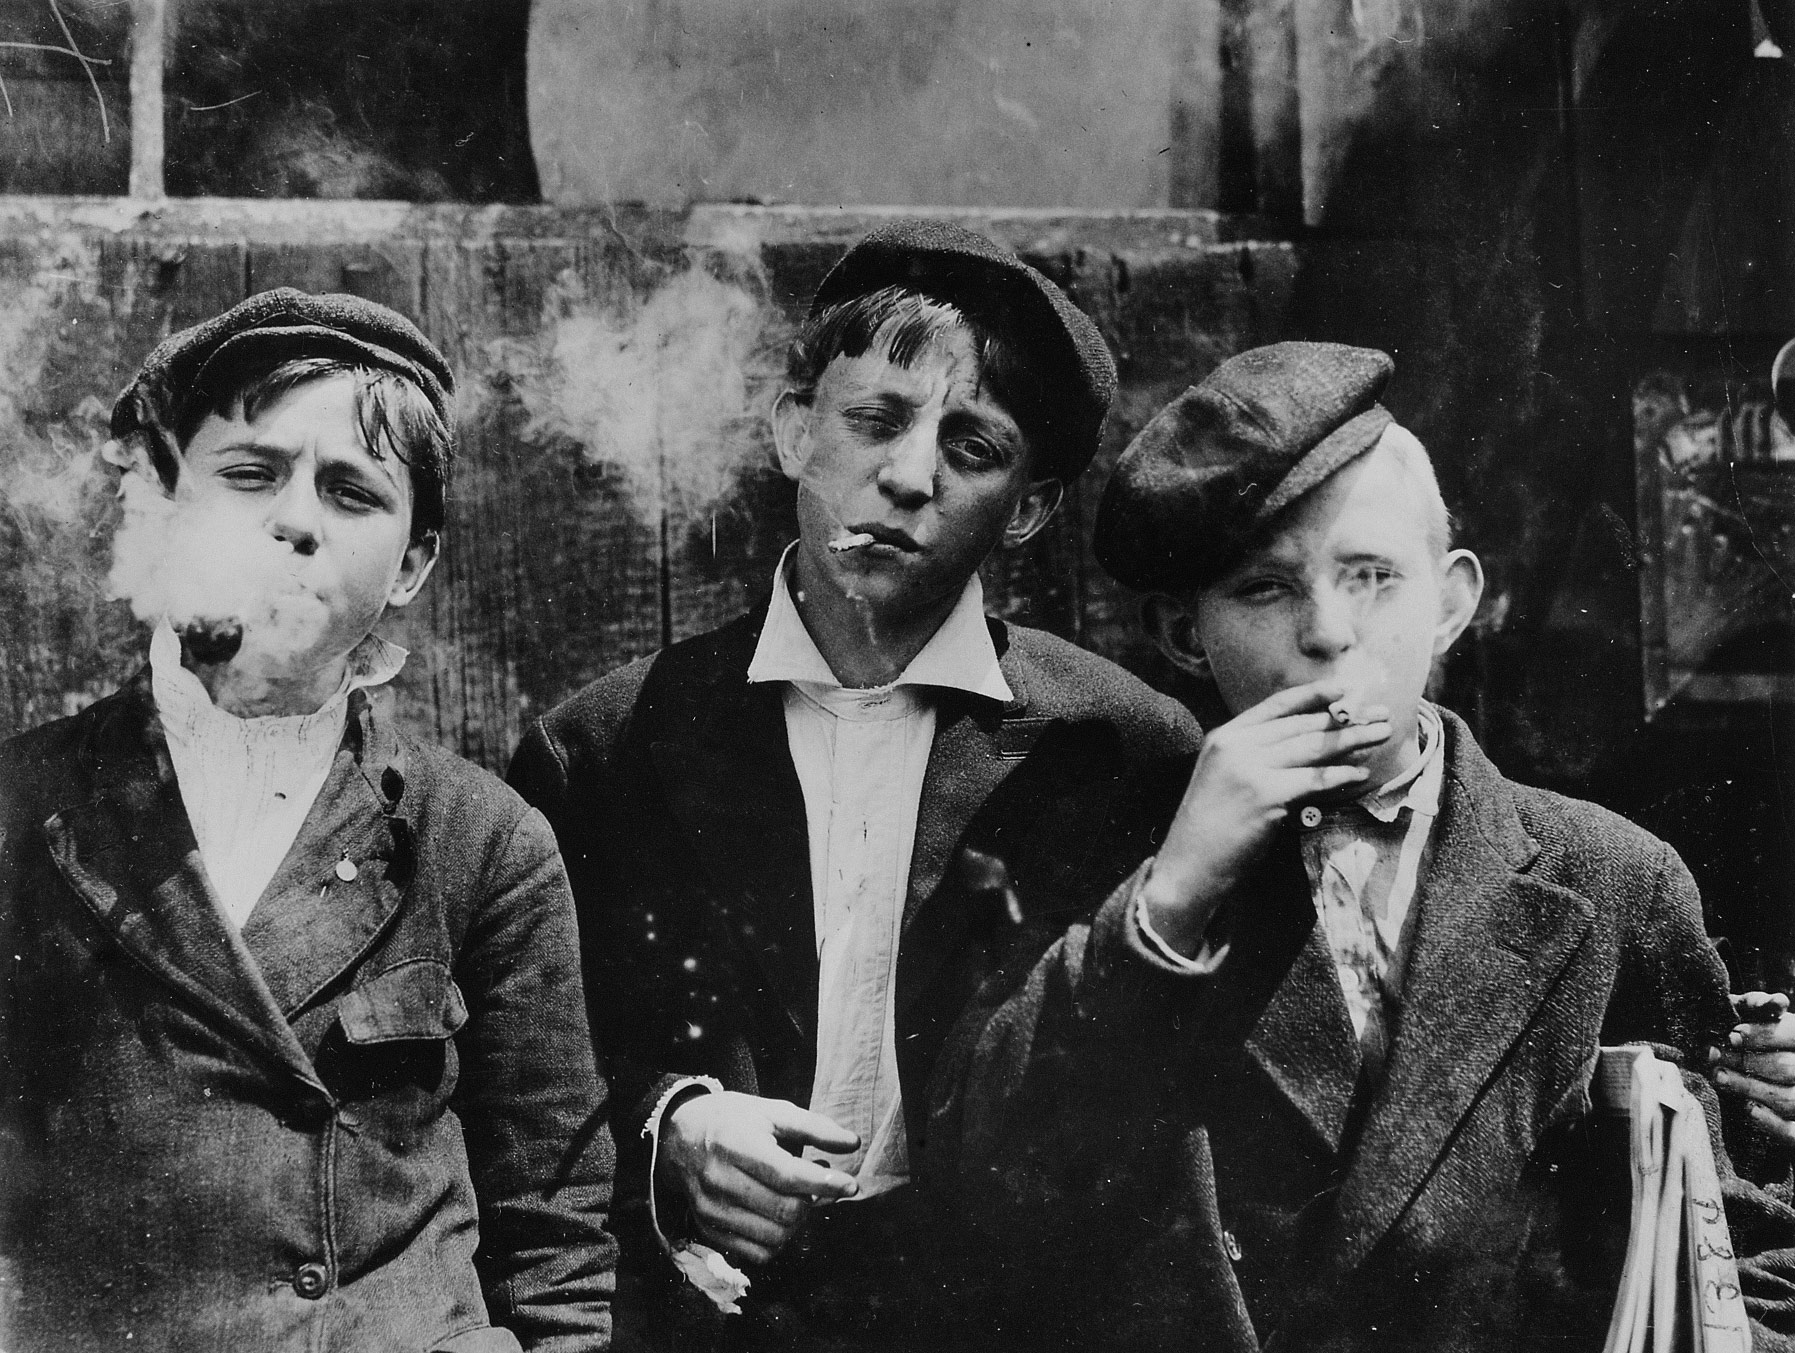 1100_a_m_monday_may_9th_1910_newsies_at_skeeter_s_branch_jefferson_near_franklin_they_were_all_smoking_location_st_louis_missouri.jpg